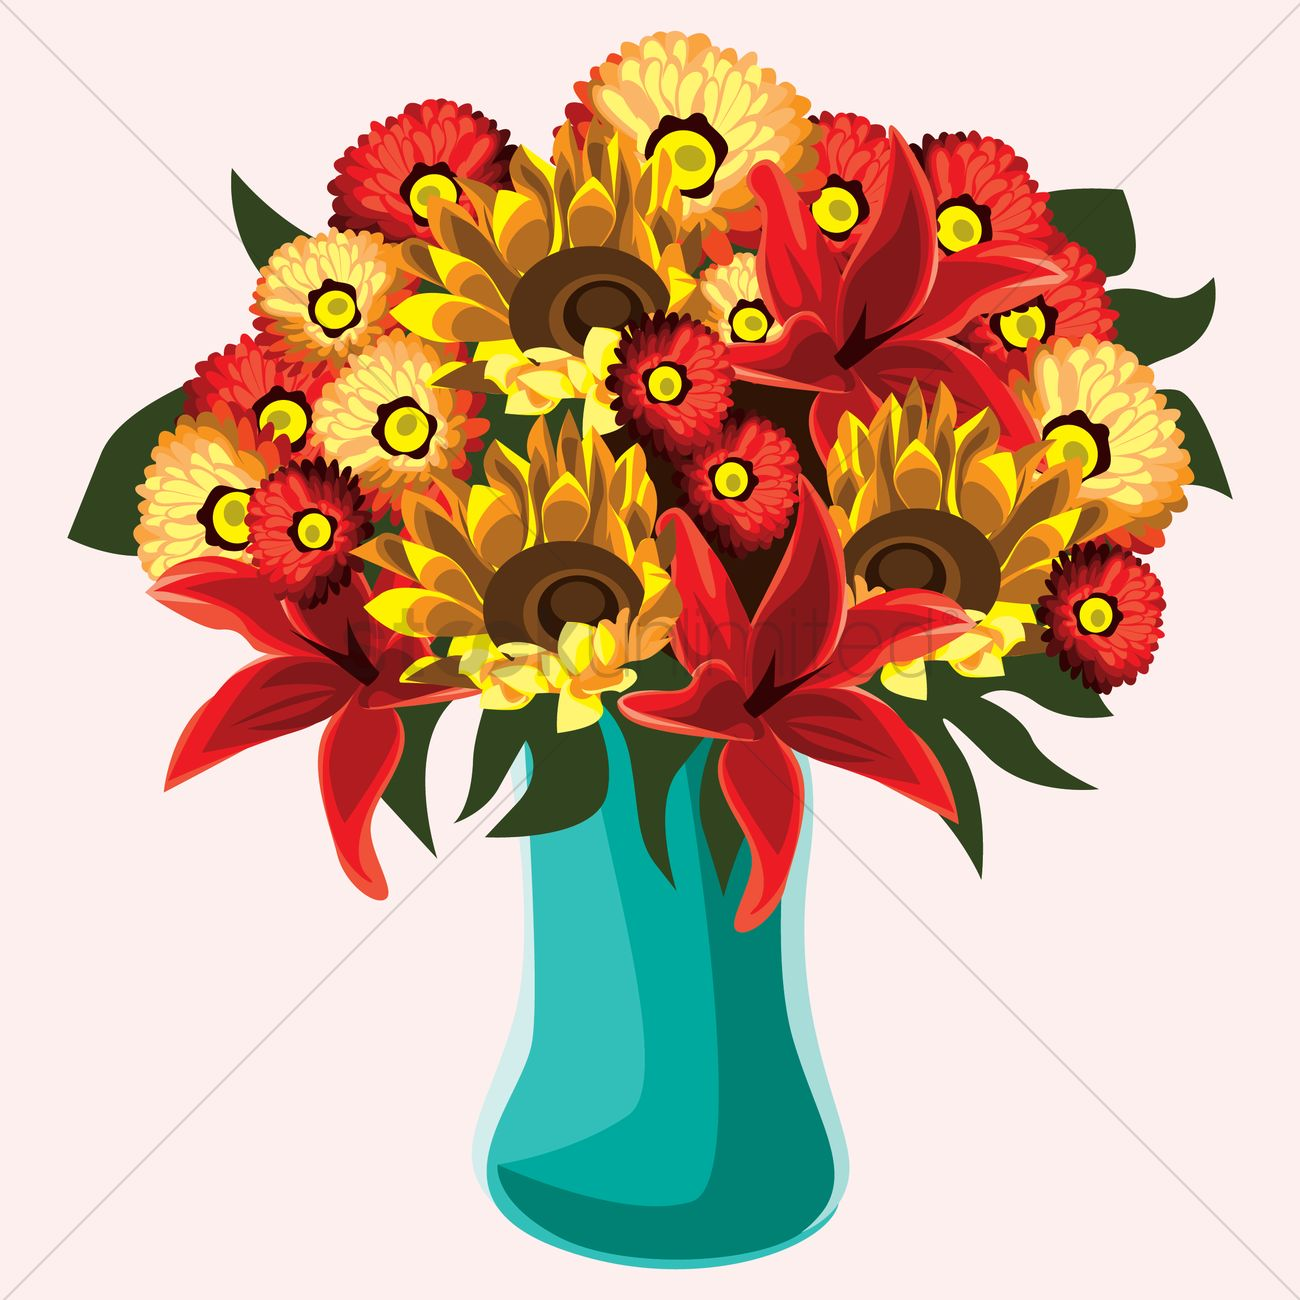 Free color full flowers in a vase vector image 1459737 free color full flowers in a vase vector graphic reviewsmspy